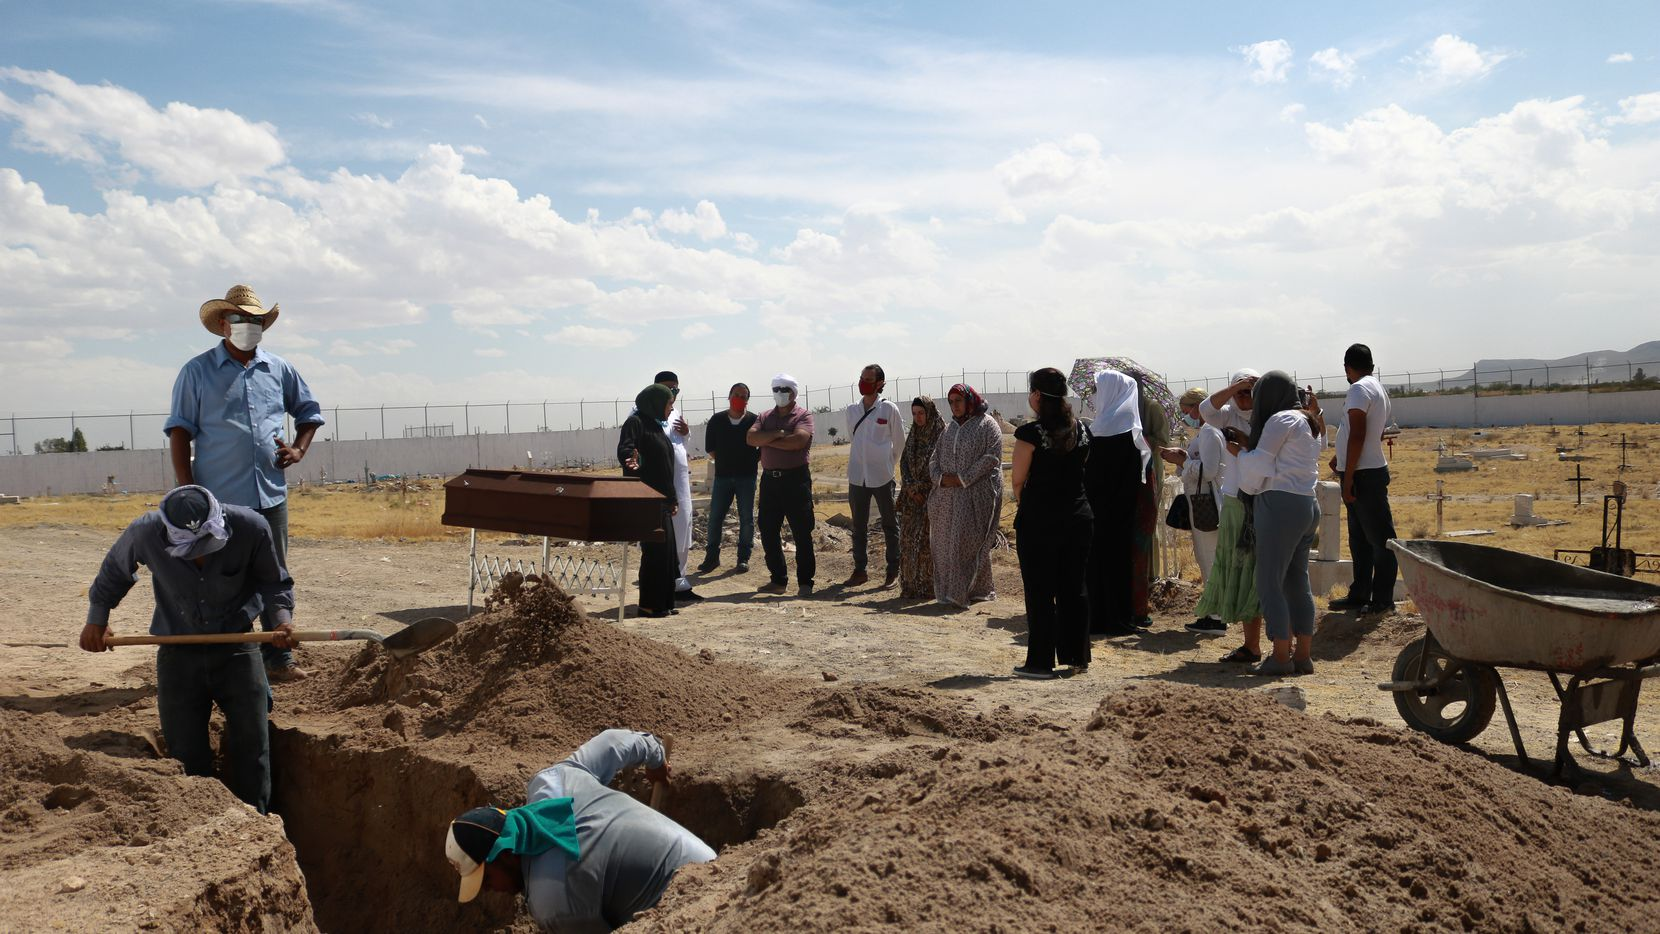 Cemetery workers dig a grave in a cemetery in Ciudad Juarez, Mexico, on June 11, 2020, to bury Jamila Nabunjo, a Muslim immigrant from Uganda, who lived in a shelter while waiting to petition for asylum in the United States. Nabunjo died in September of 2019 and it took months for the local authorities to release her body.